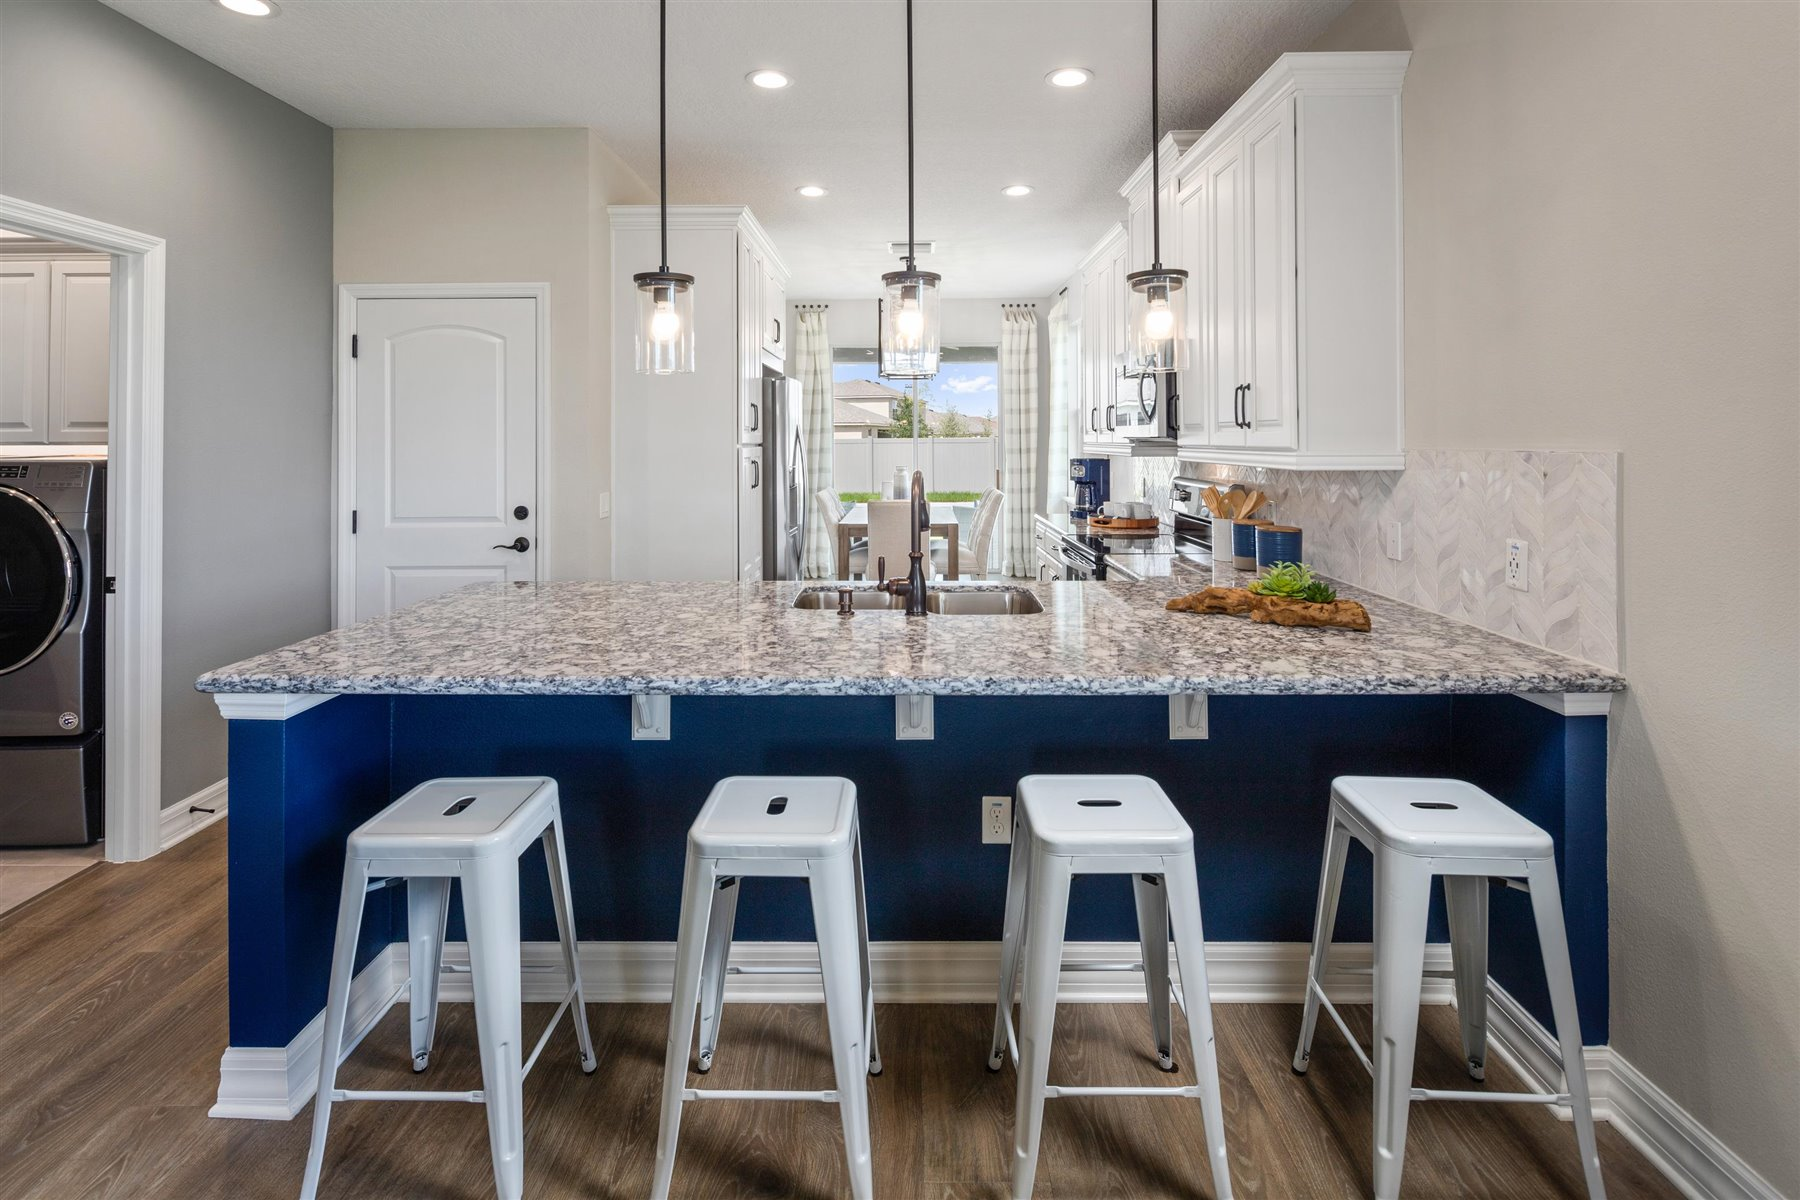 Selena III Plan Kitchen at Waterbrooke in Clermont Florida by Mattamy Homes